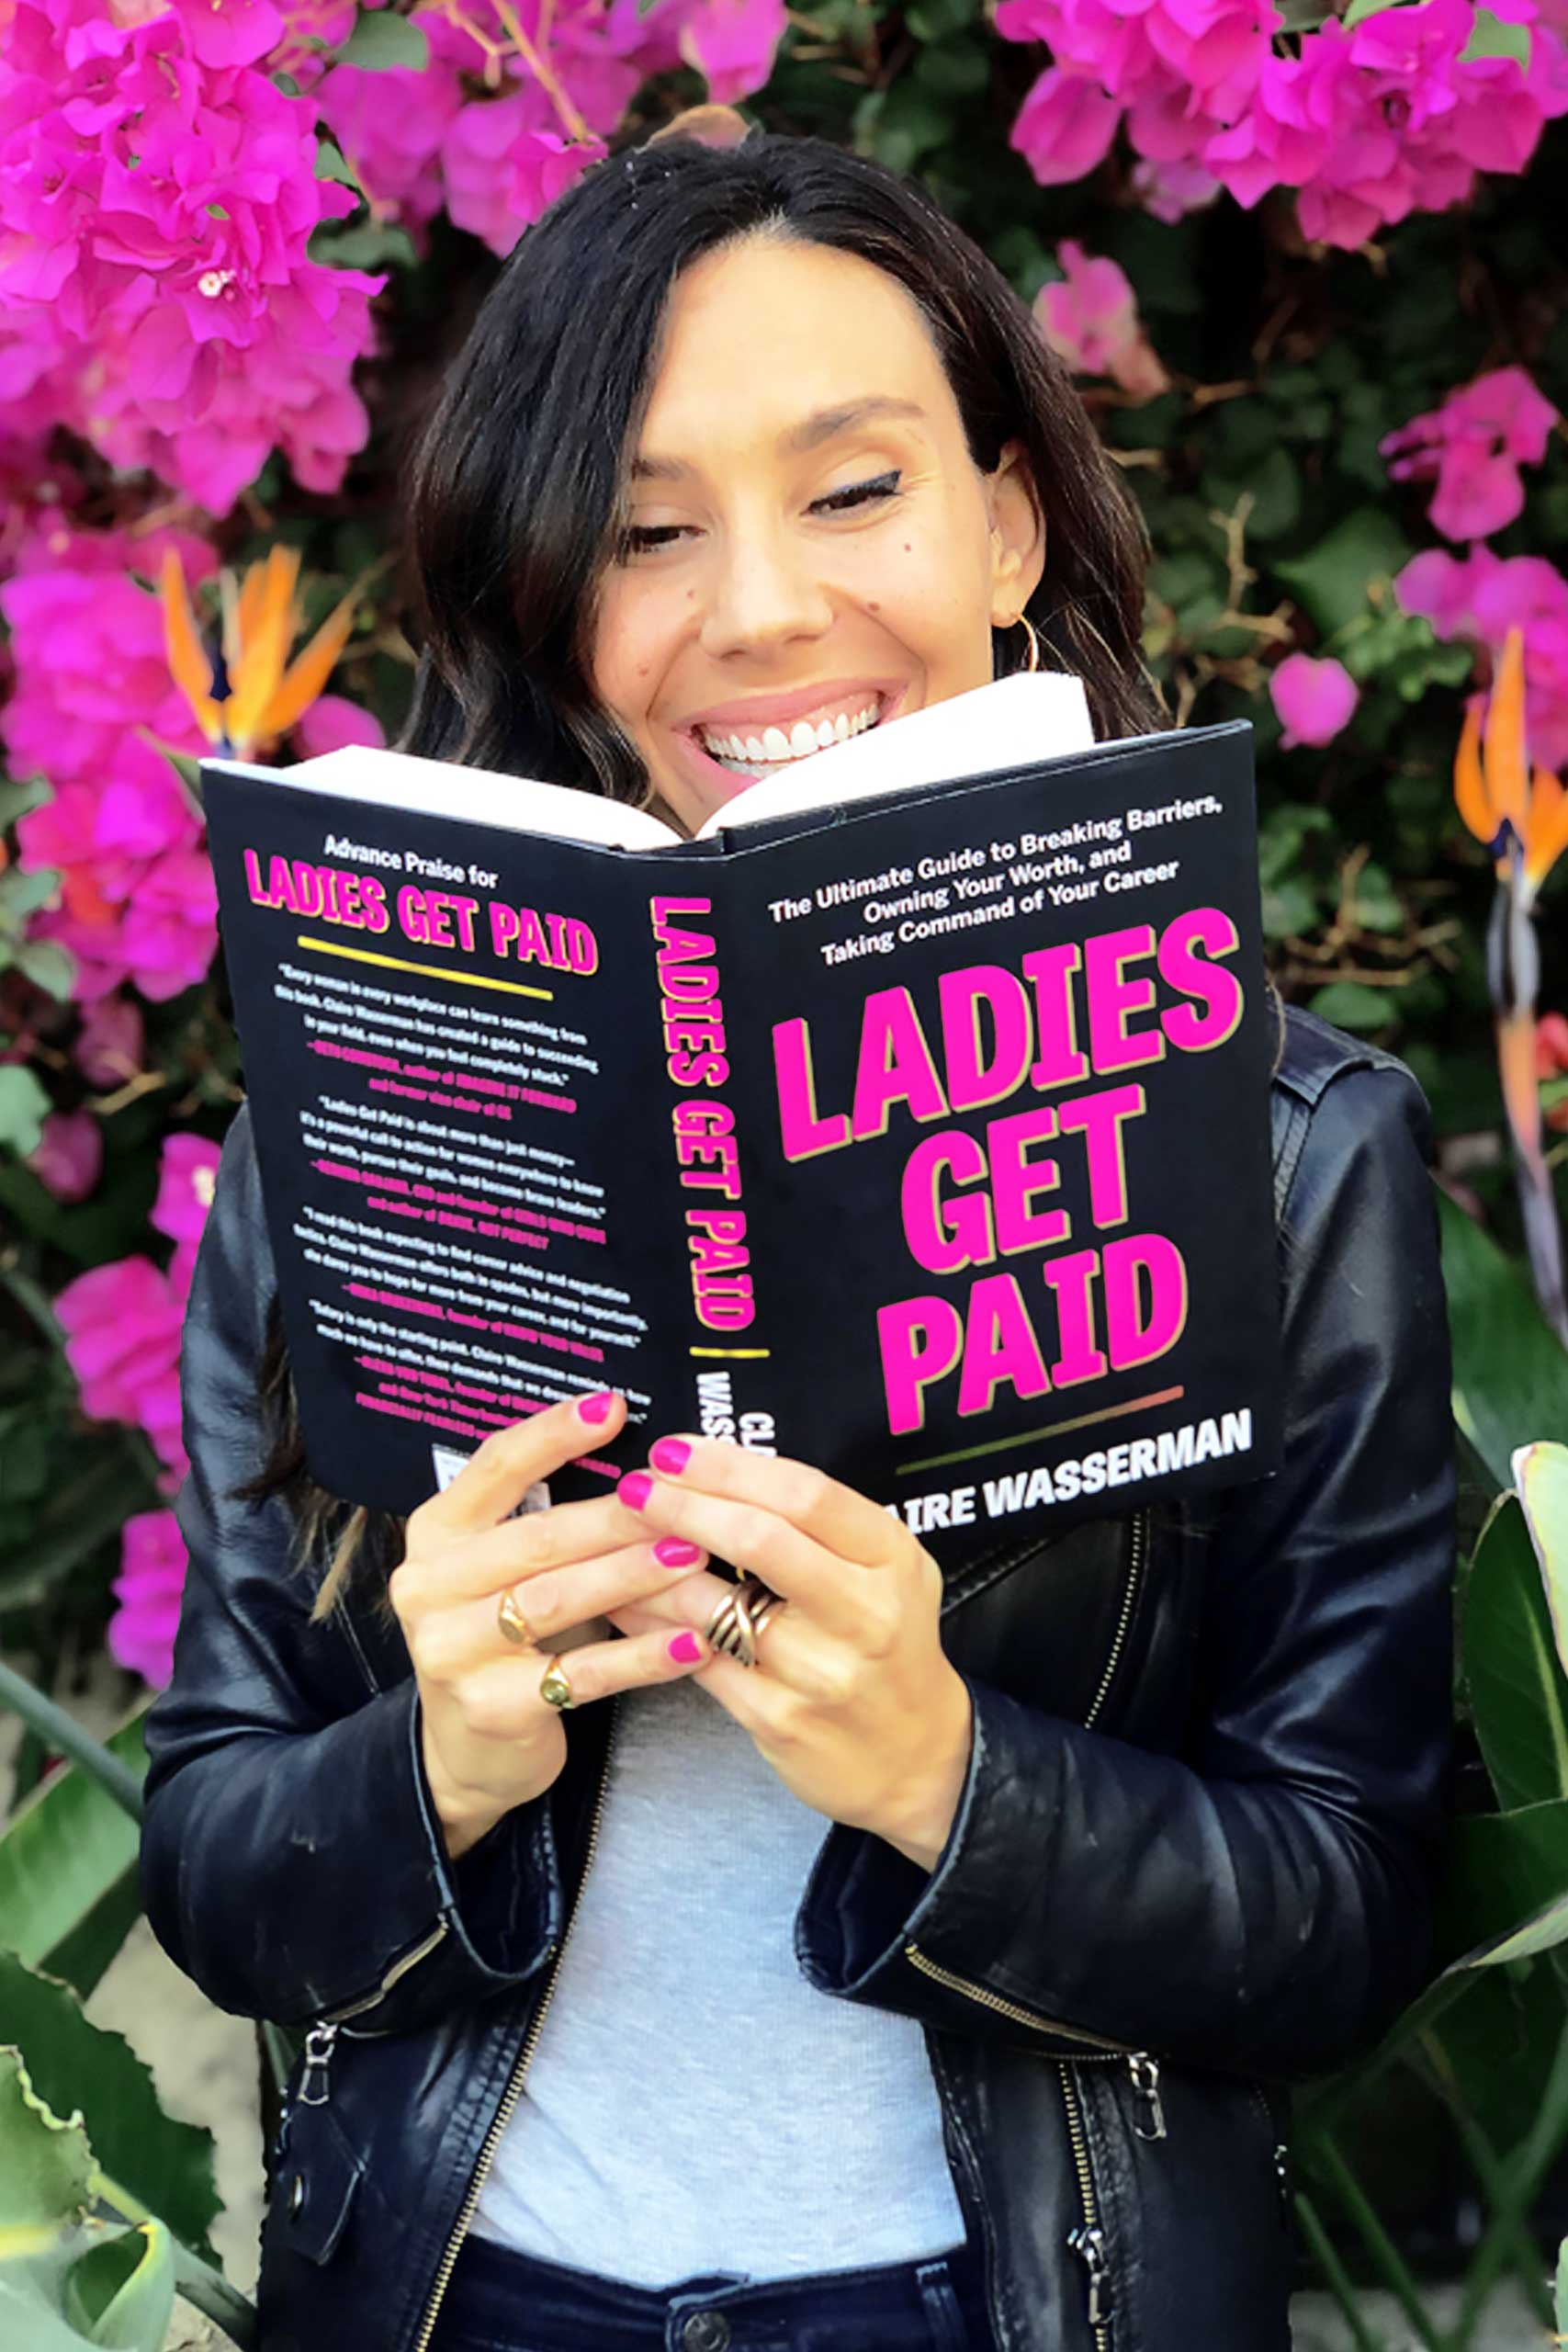 How To Invest in Cryptocurrency, & Financial Education for Women with Claire Wasserman, Founder of Ladies Get Paid